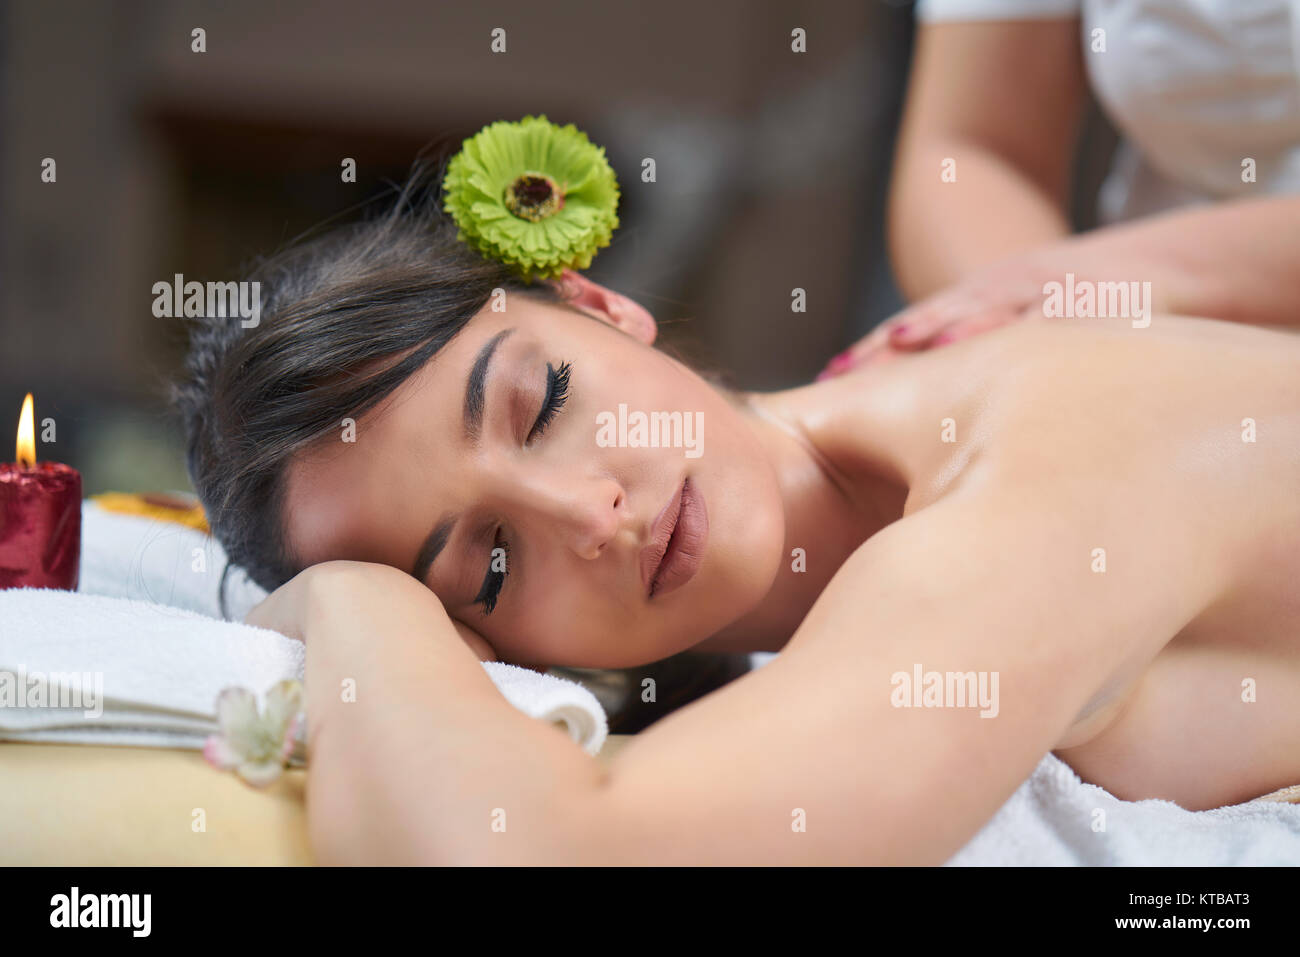 Spa woman. Female enjoying relaxing back massage in cosmetology spa centre. Body care, skin care, wellness, wellbeing, Stock Photo